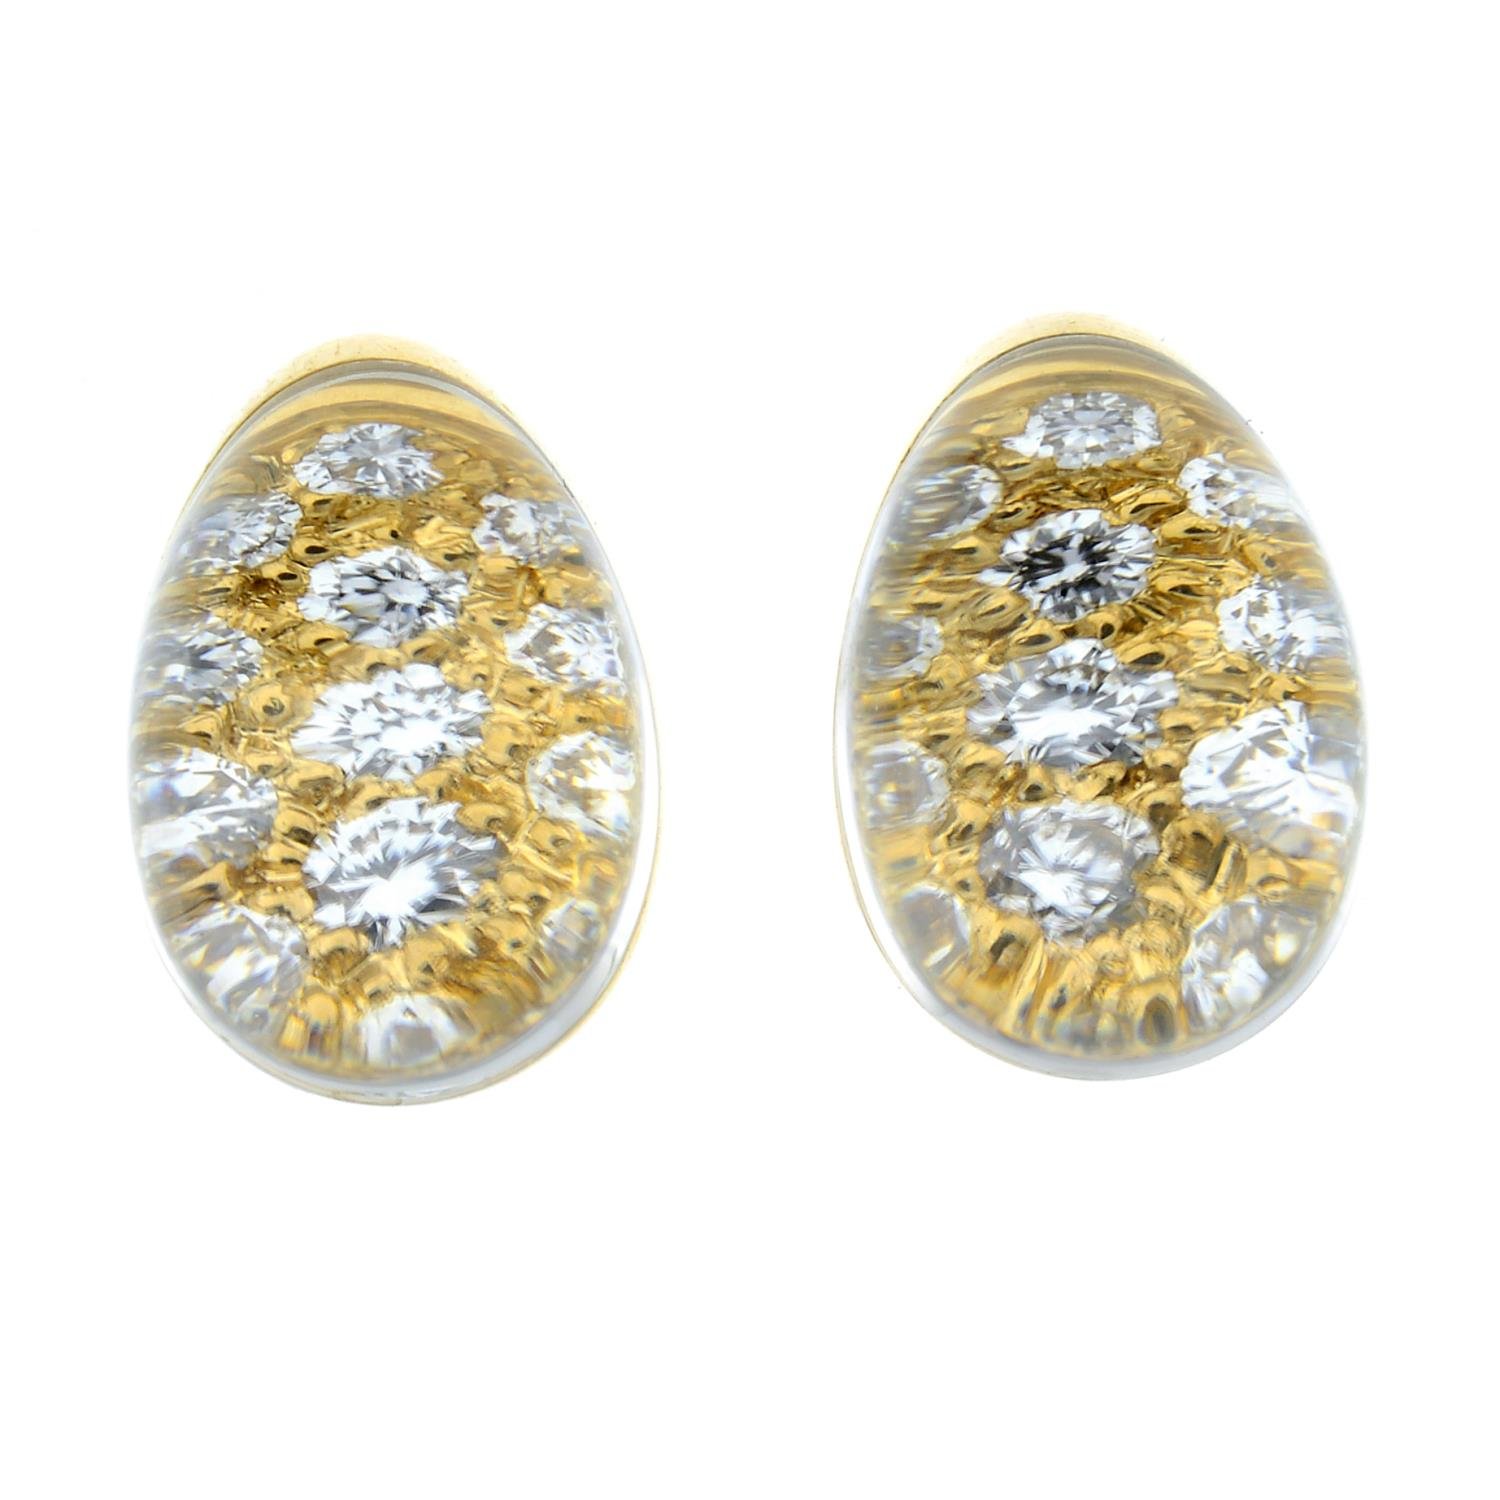 A pair of diamond and rock crystal 'Myst' earrings, by Cartier.Stamped 750. - Image 2 of 4